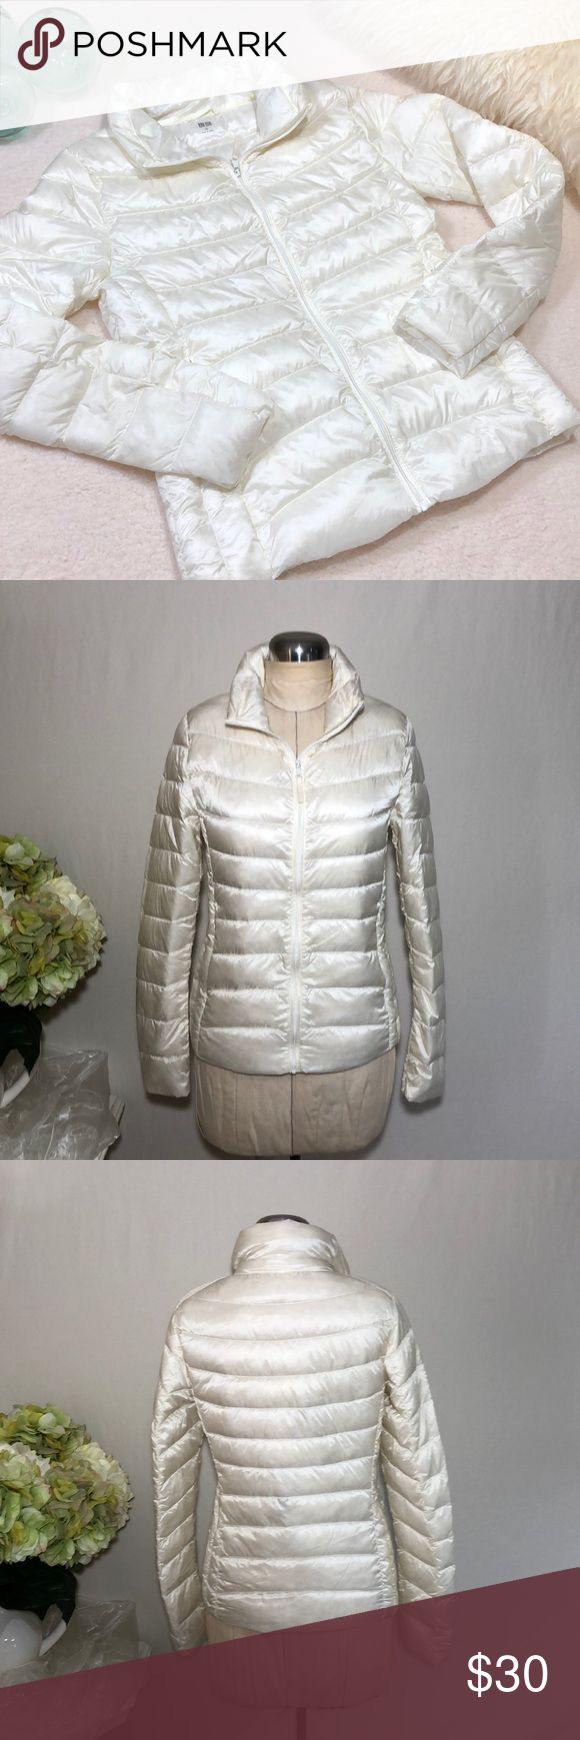 Uniqlo Women's Down Filled Puffer Jacket Excellent